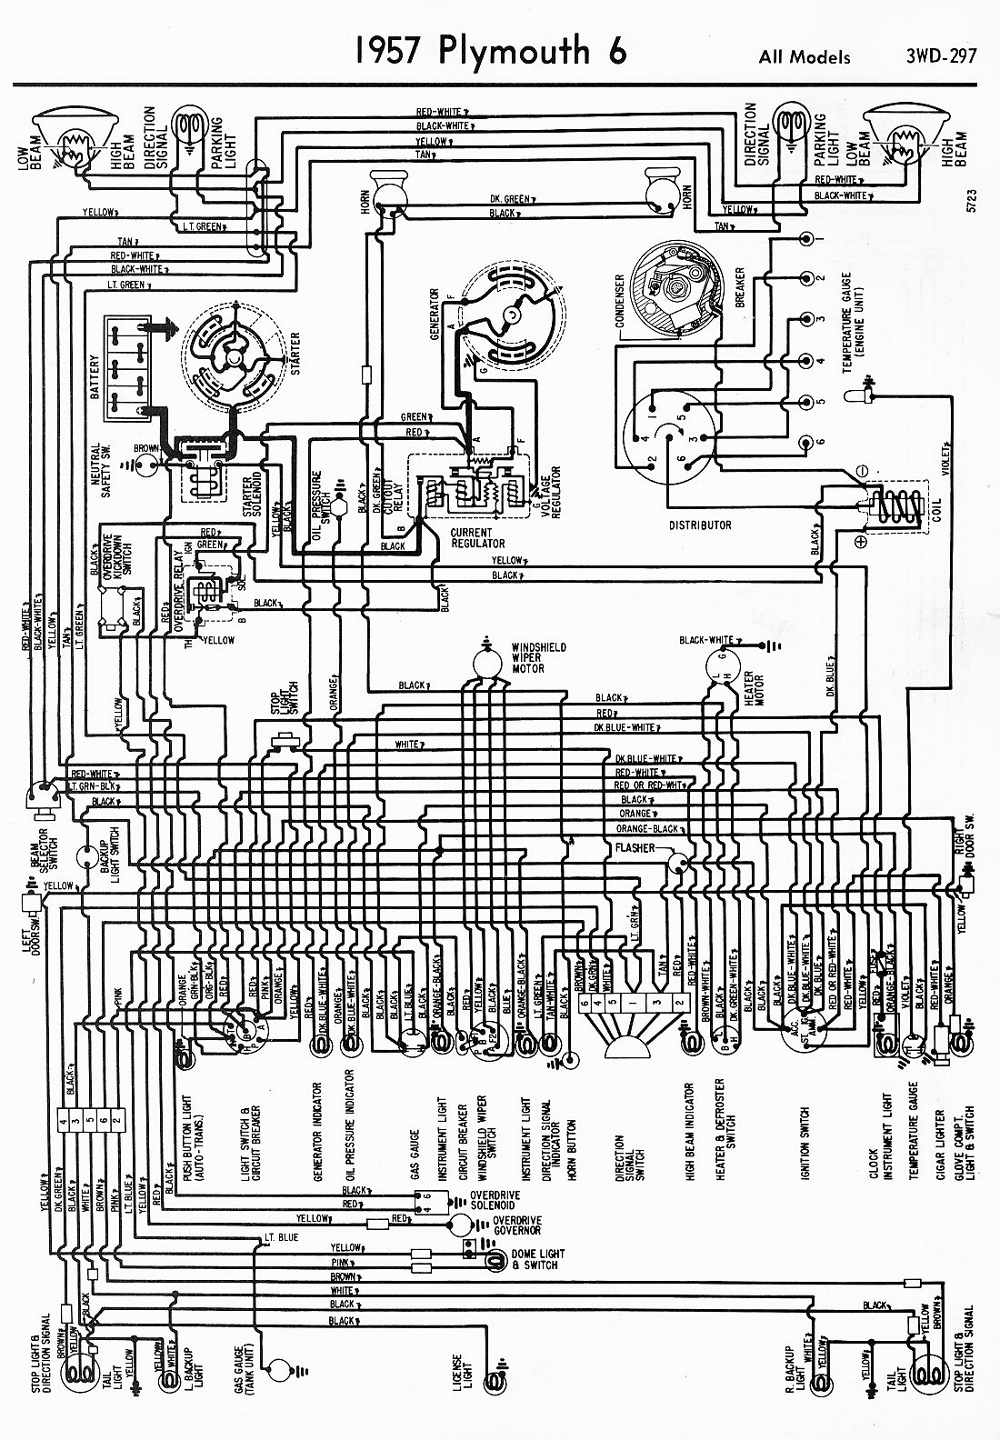 1957 plymouth wiring diagram wiring diagram portal rh 14 1 kaminari music de mymopar wiring diagrams for 1951 plymouth 1950 plymouth wiring harness [ 1000 x 1440 Pixel ]